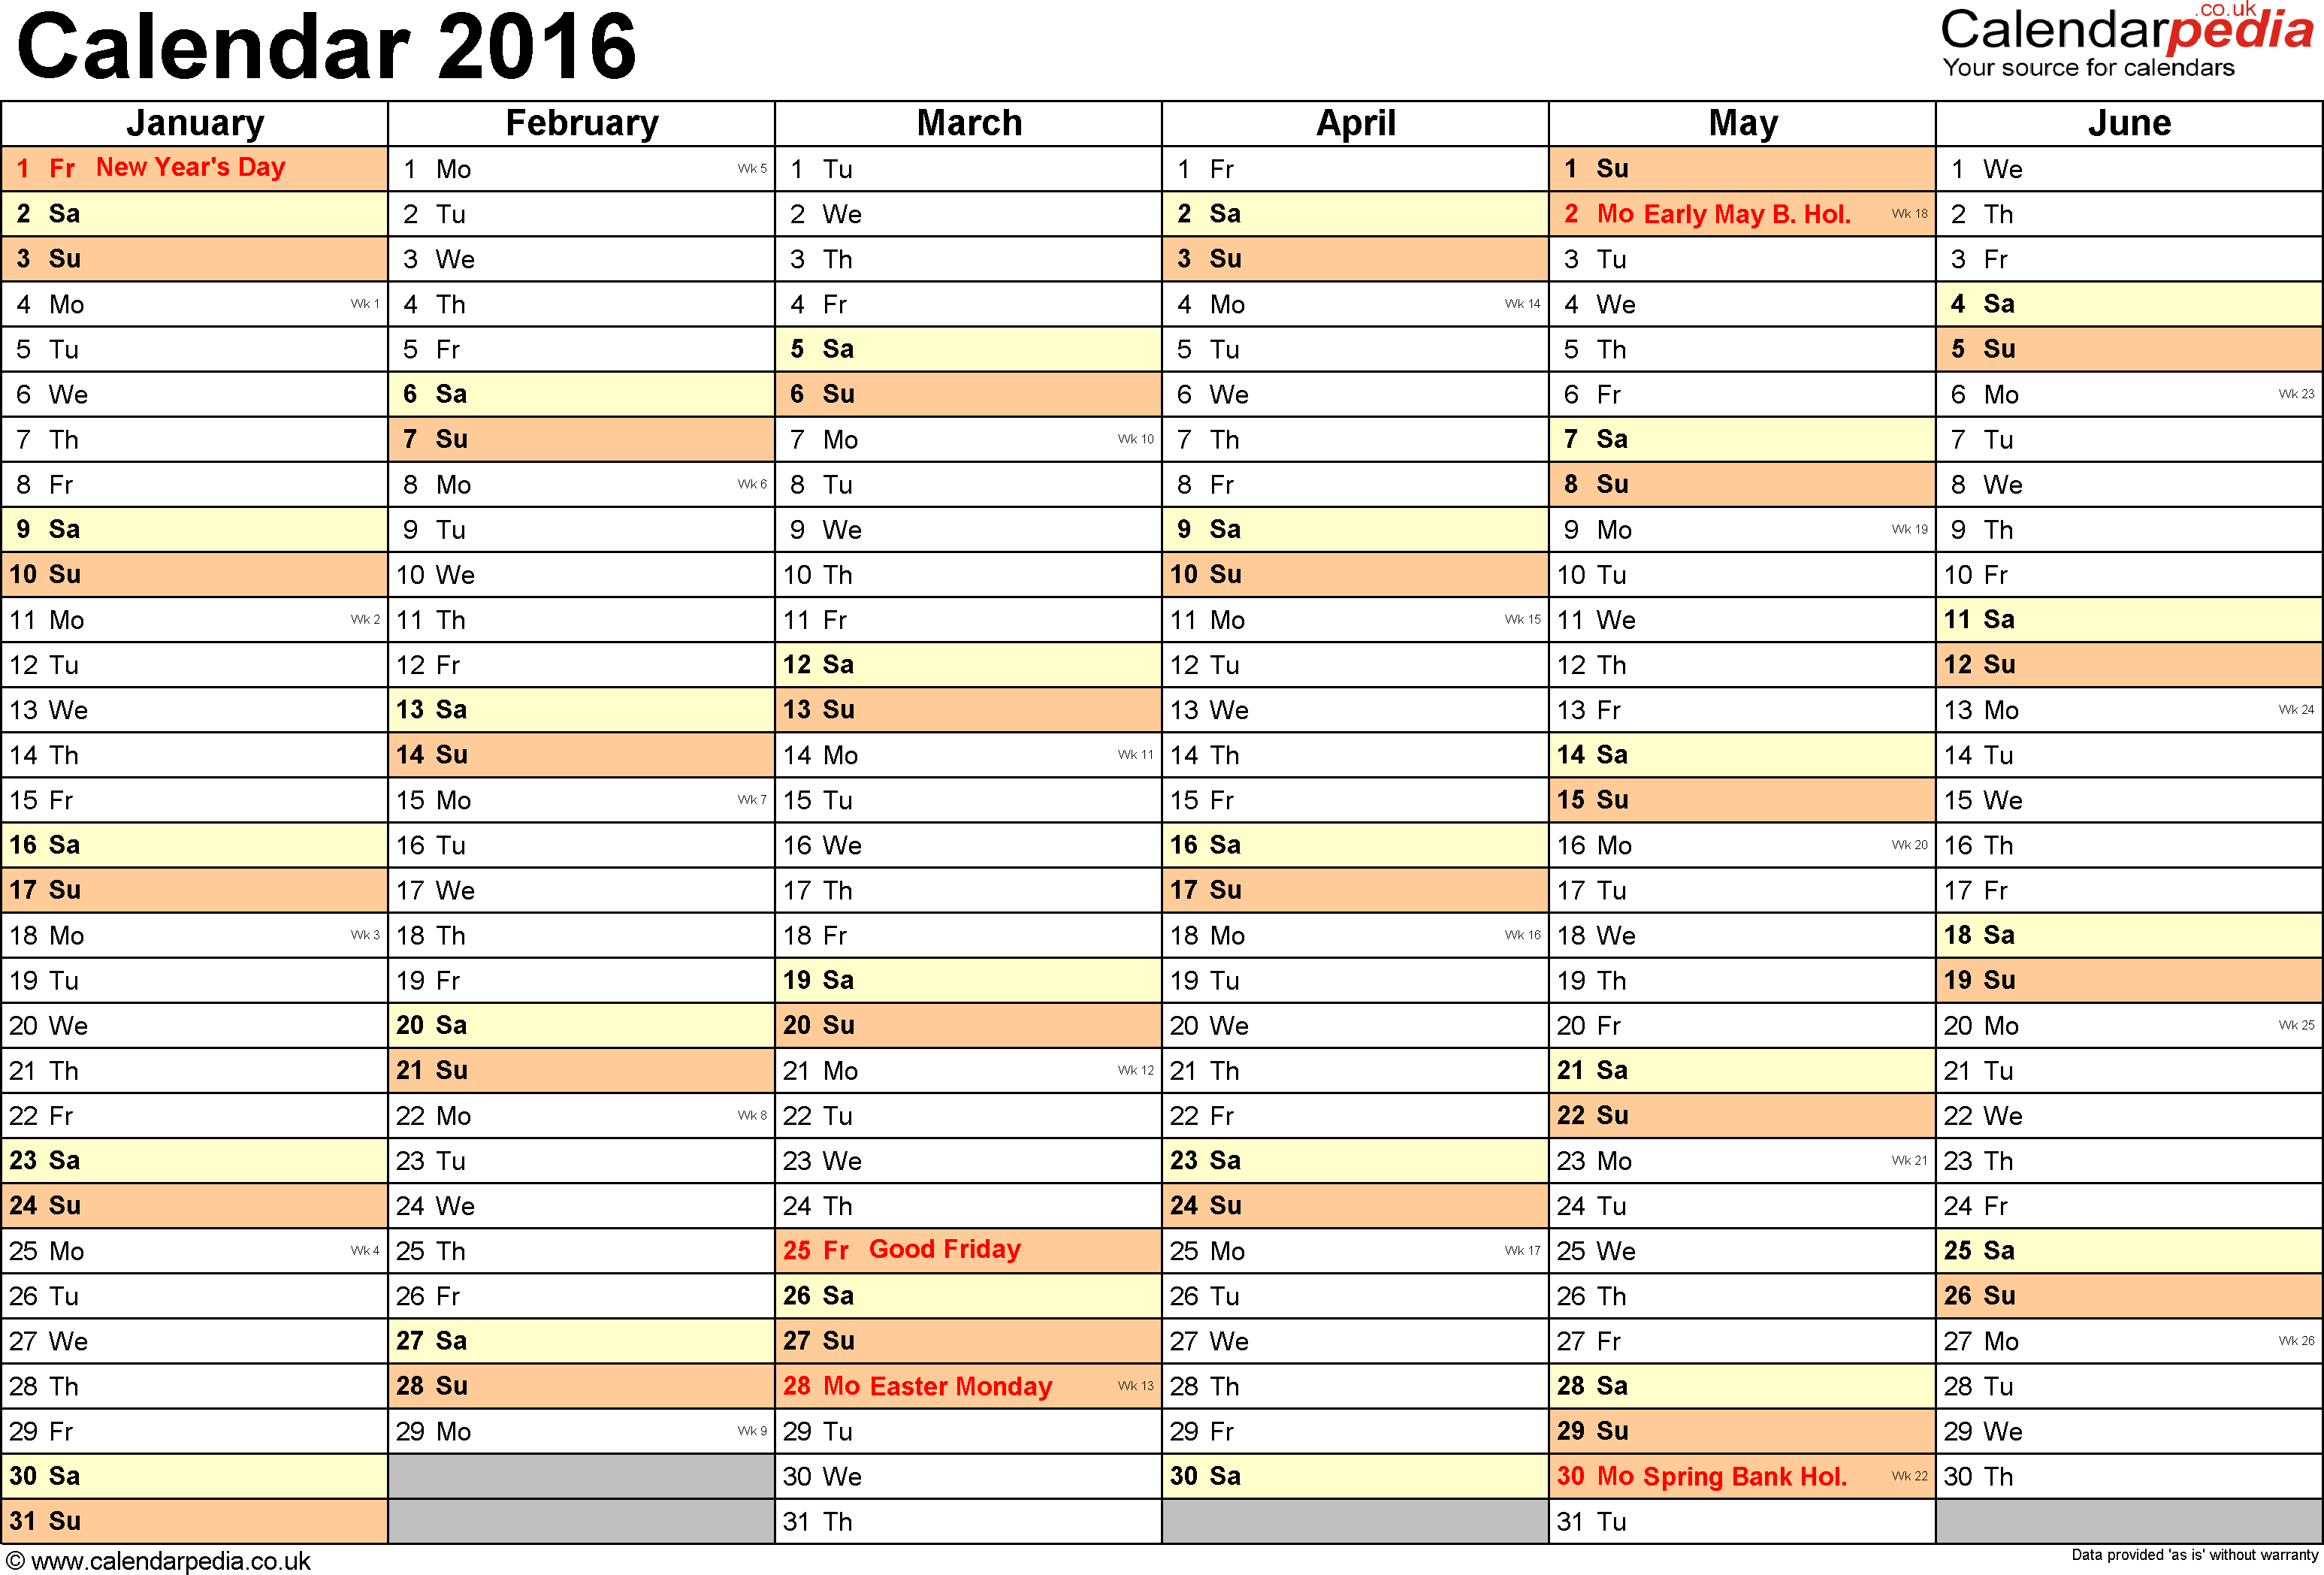 template 3 yearly calendar 2016 as word template landscape orientation 2 pages